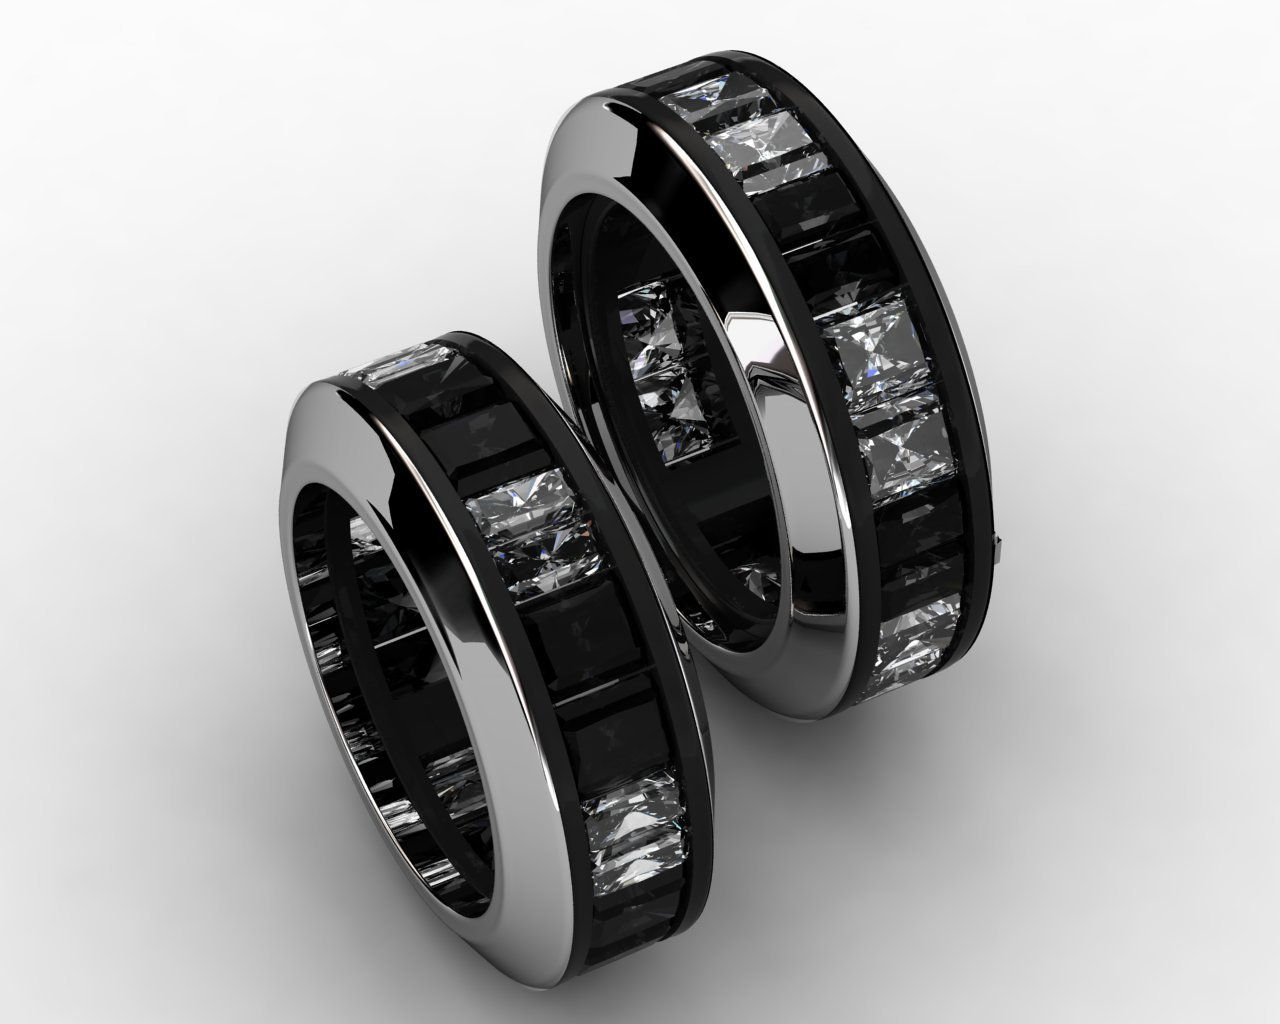 Black and white diamond rings